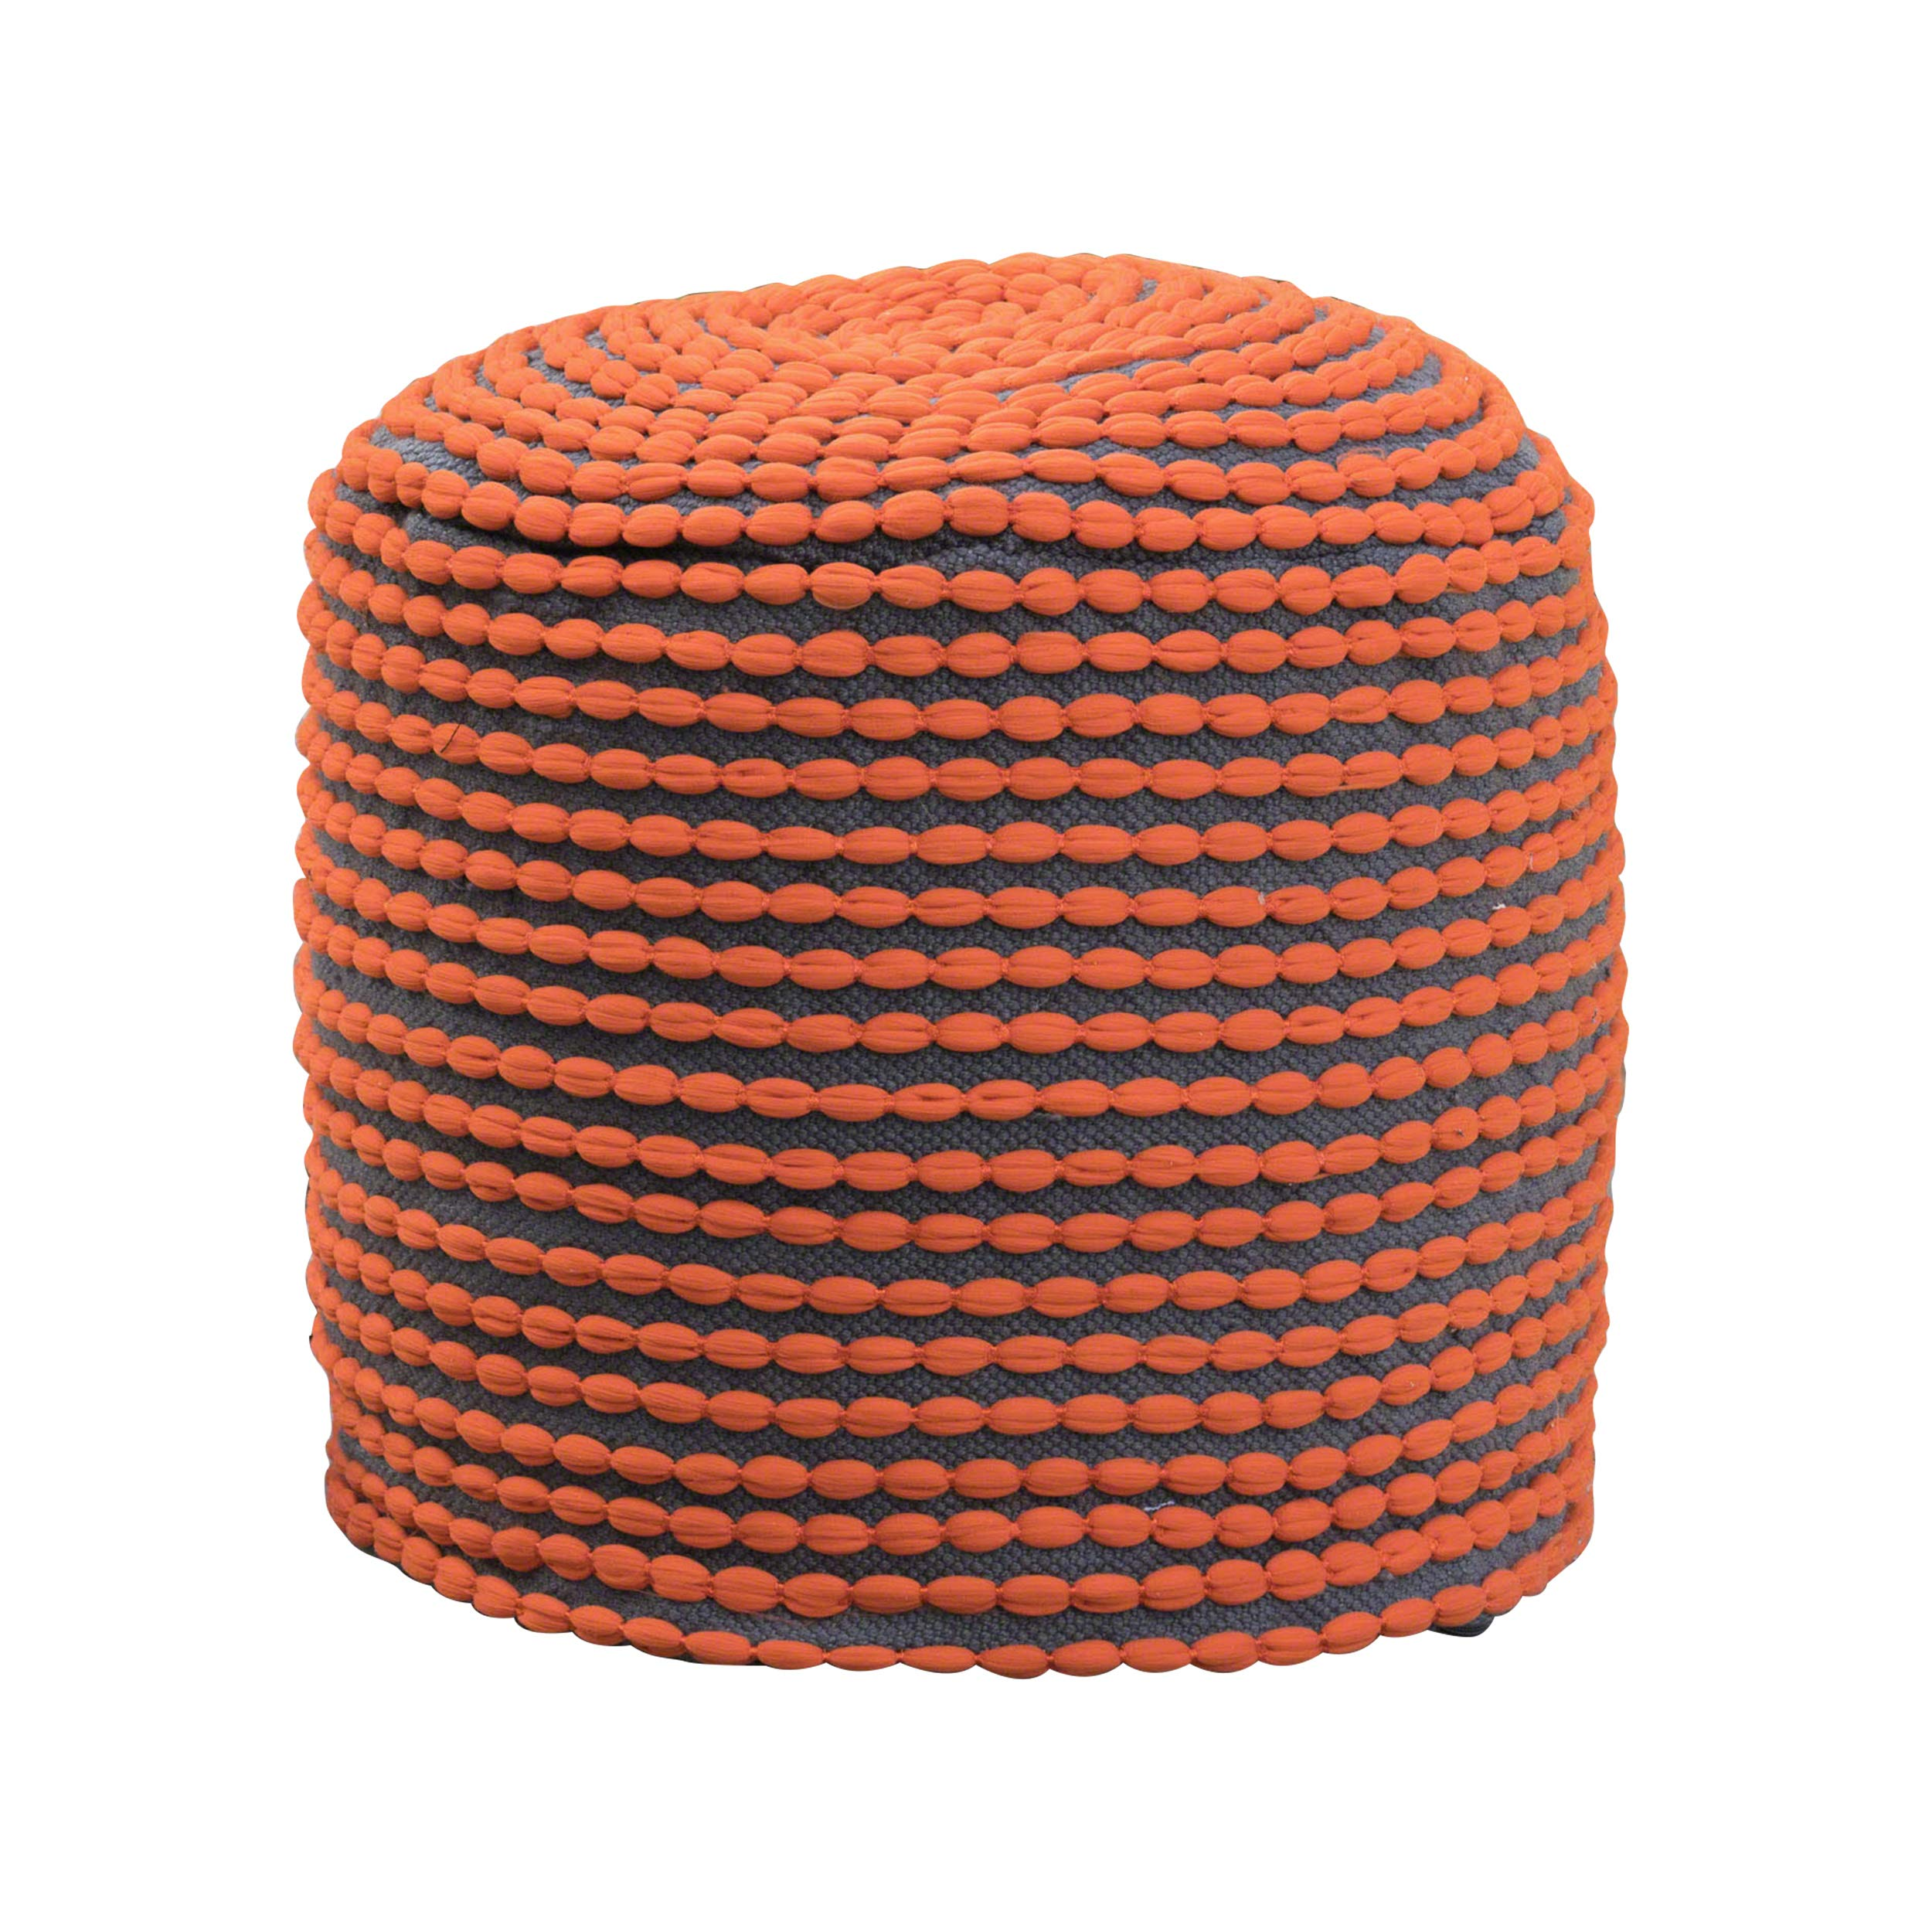 Great Deal Furniture Collier Outdoor Pouf | Orange Fabric | Round | Footrest for Patio Set